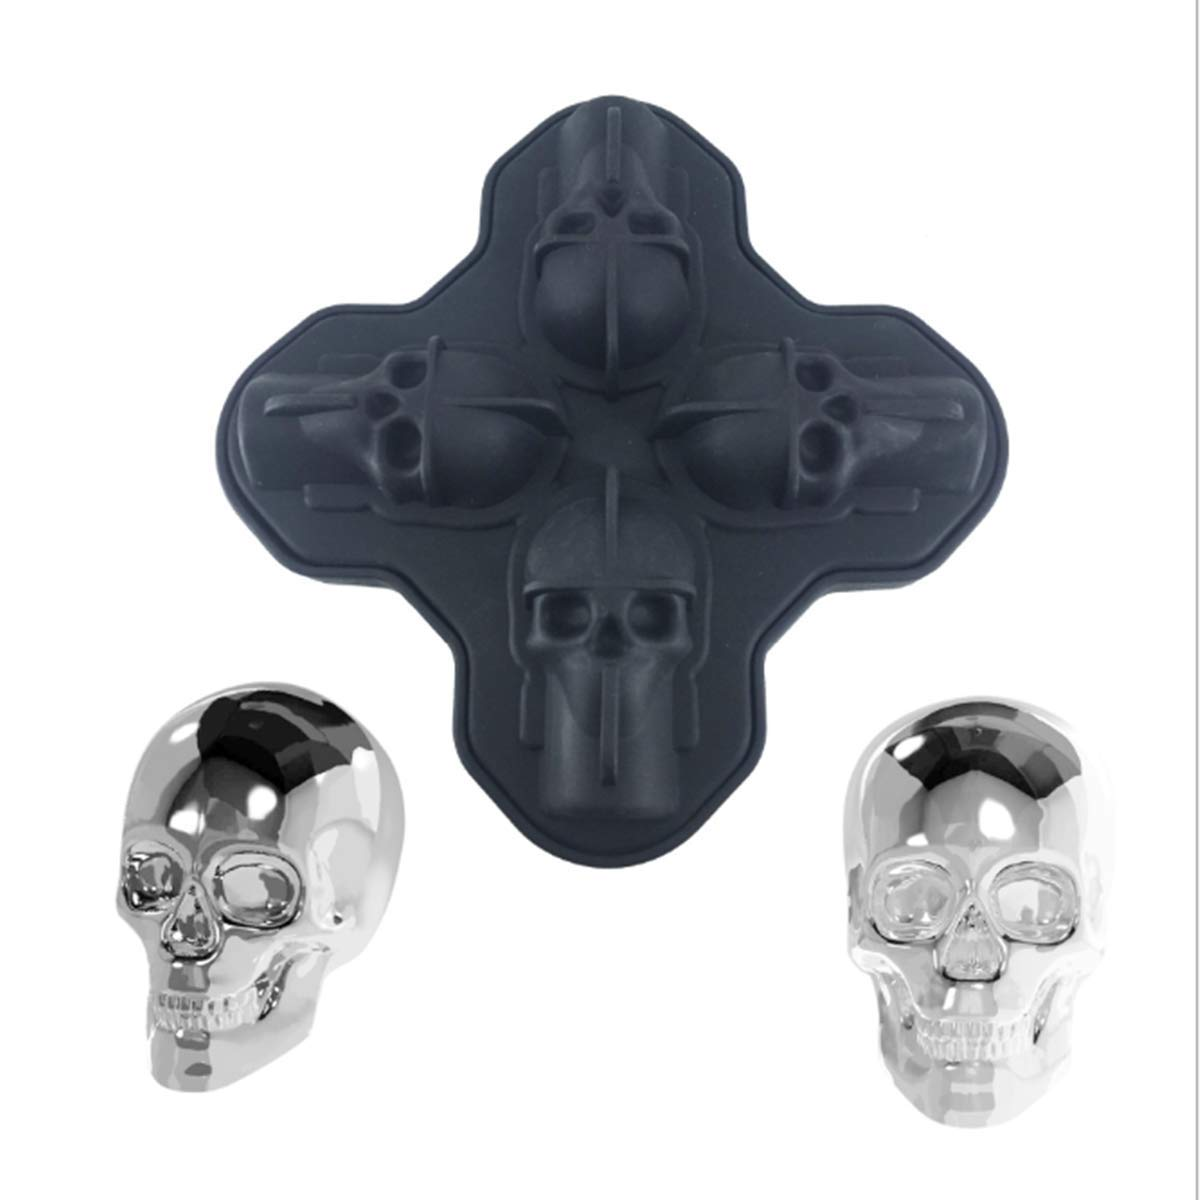 3D Skull Ice Cube Tray Mould, Makes Four Vivid Skulls, Food Grade Flexible Silicone Ice Cube Maker in Shapes for Whiskey Ice and Cocktails (Black)